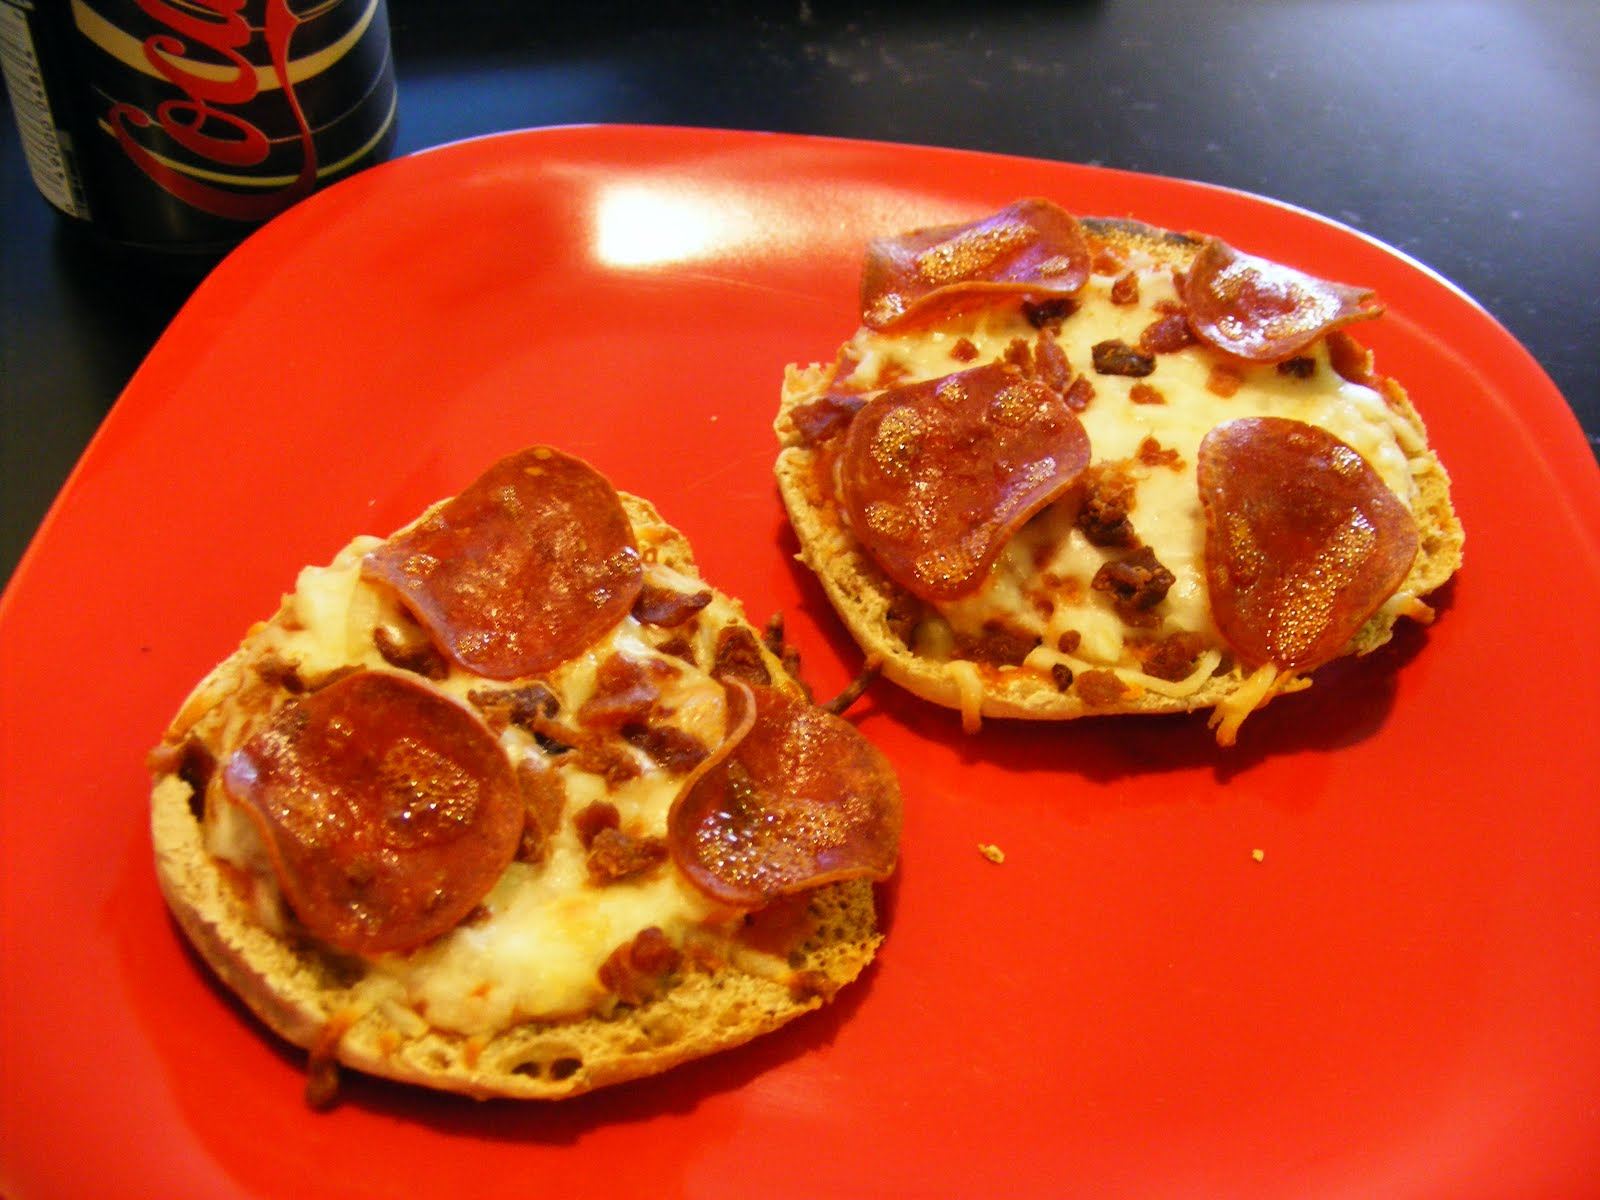 4 girls adventures with hungry girl i havent been losing any weight lately but i figured i would just eat lunch anyways i had the perfect pizzas from the recipe and survival book forumfinder Gallery